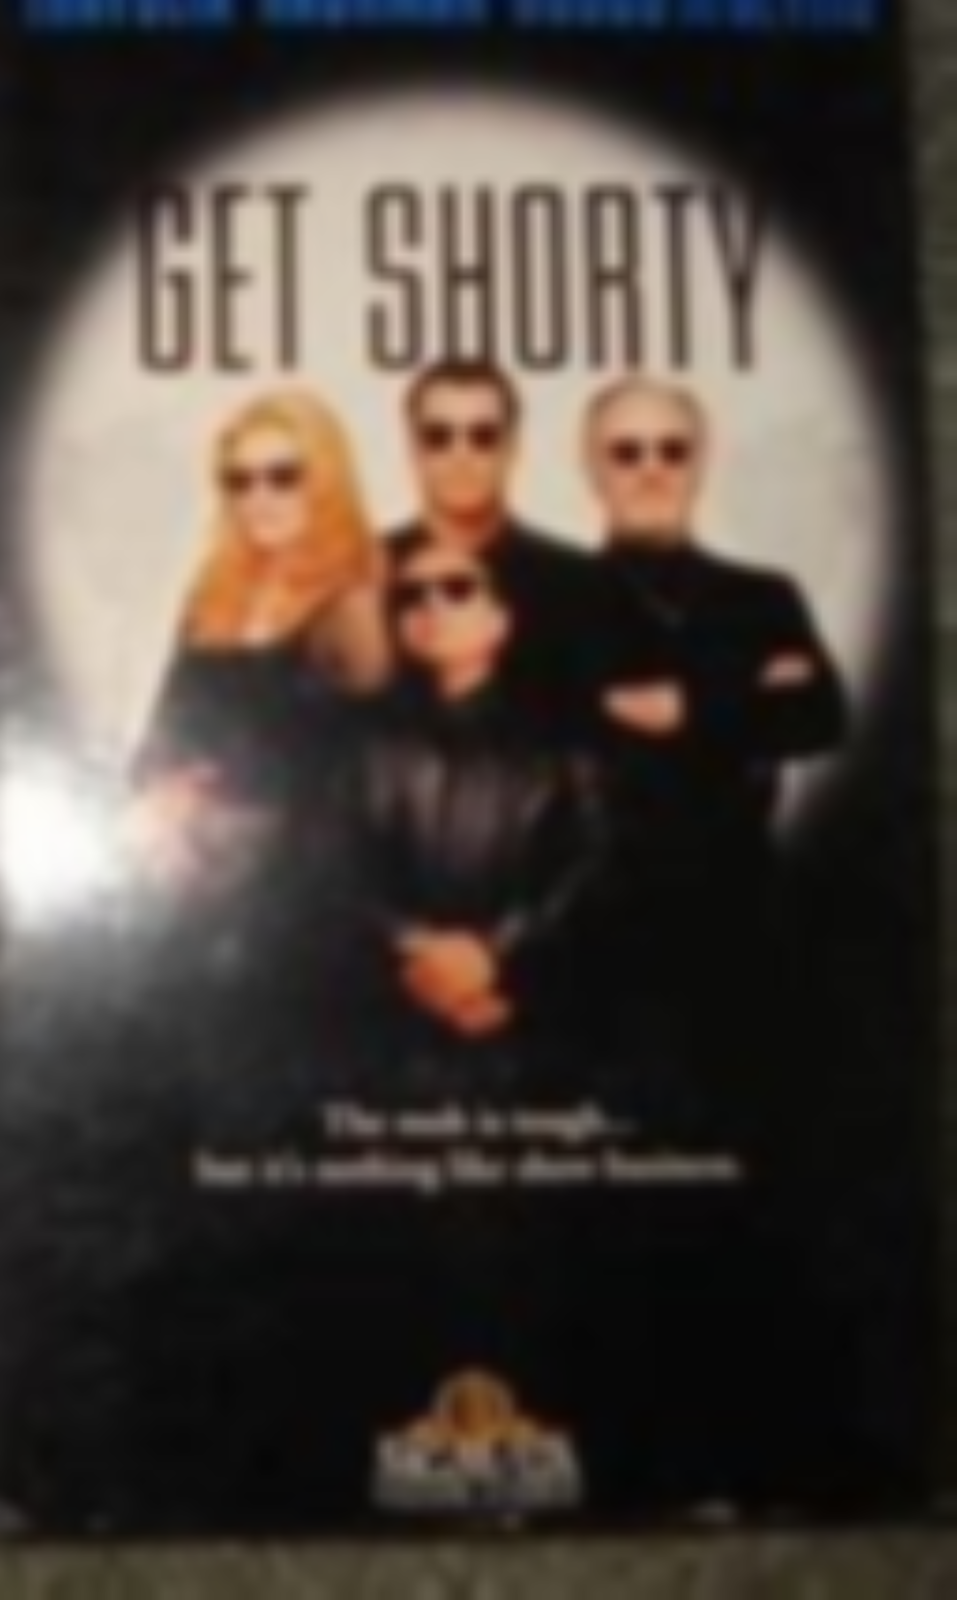 Get Shorty Vhs